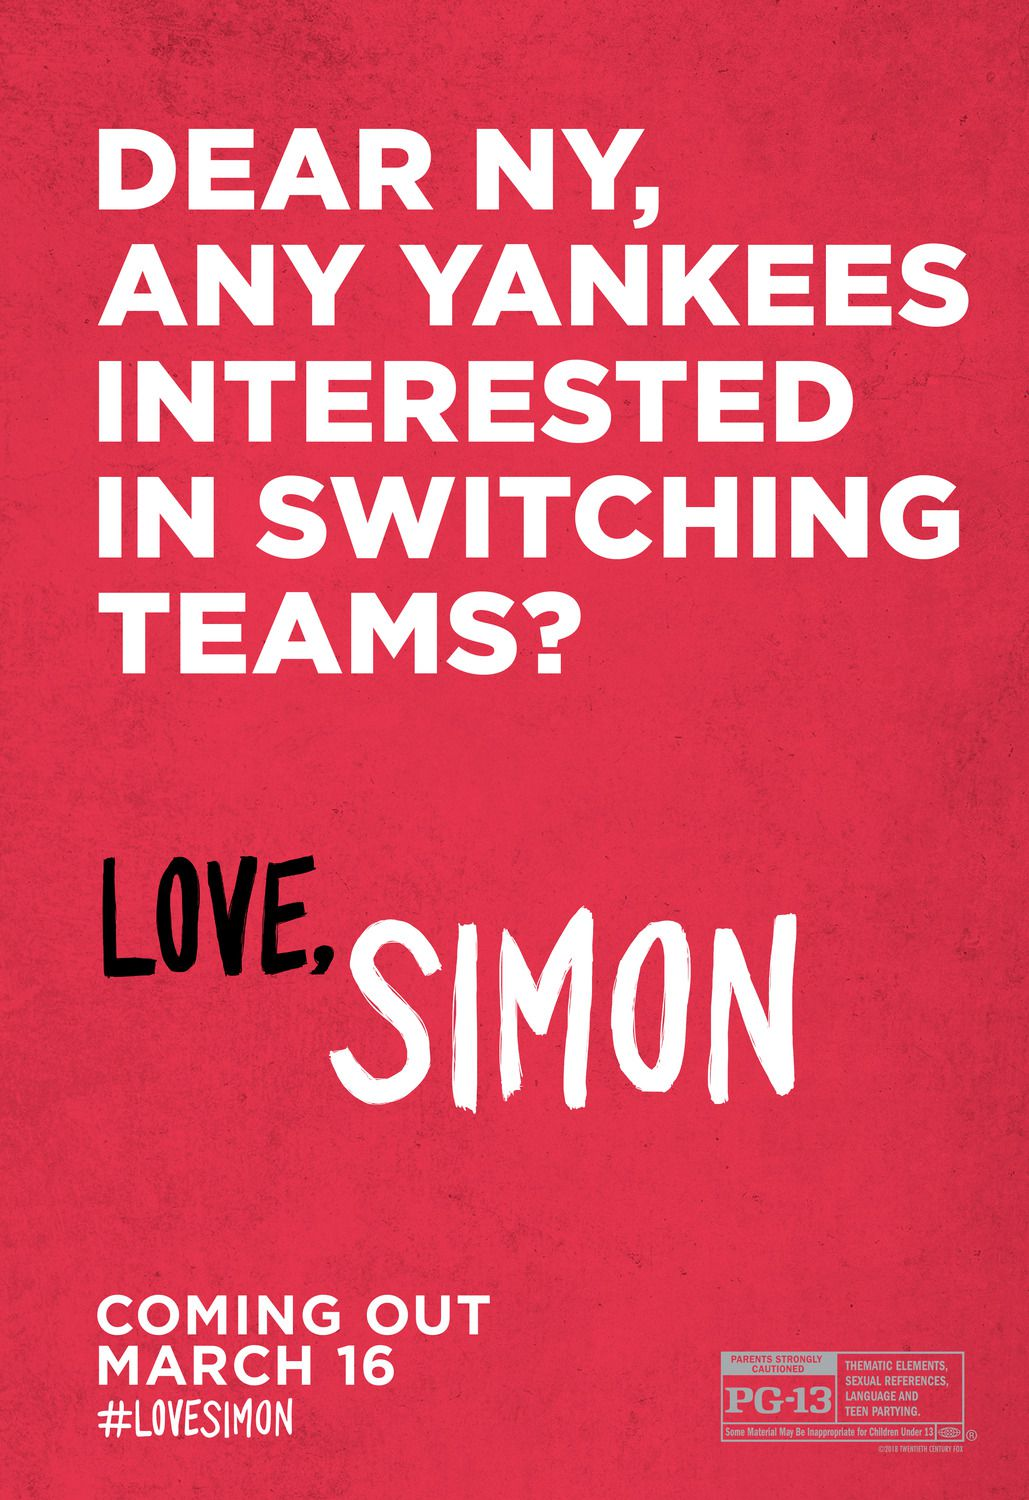 Dear NY any yankees interested in switching teams